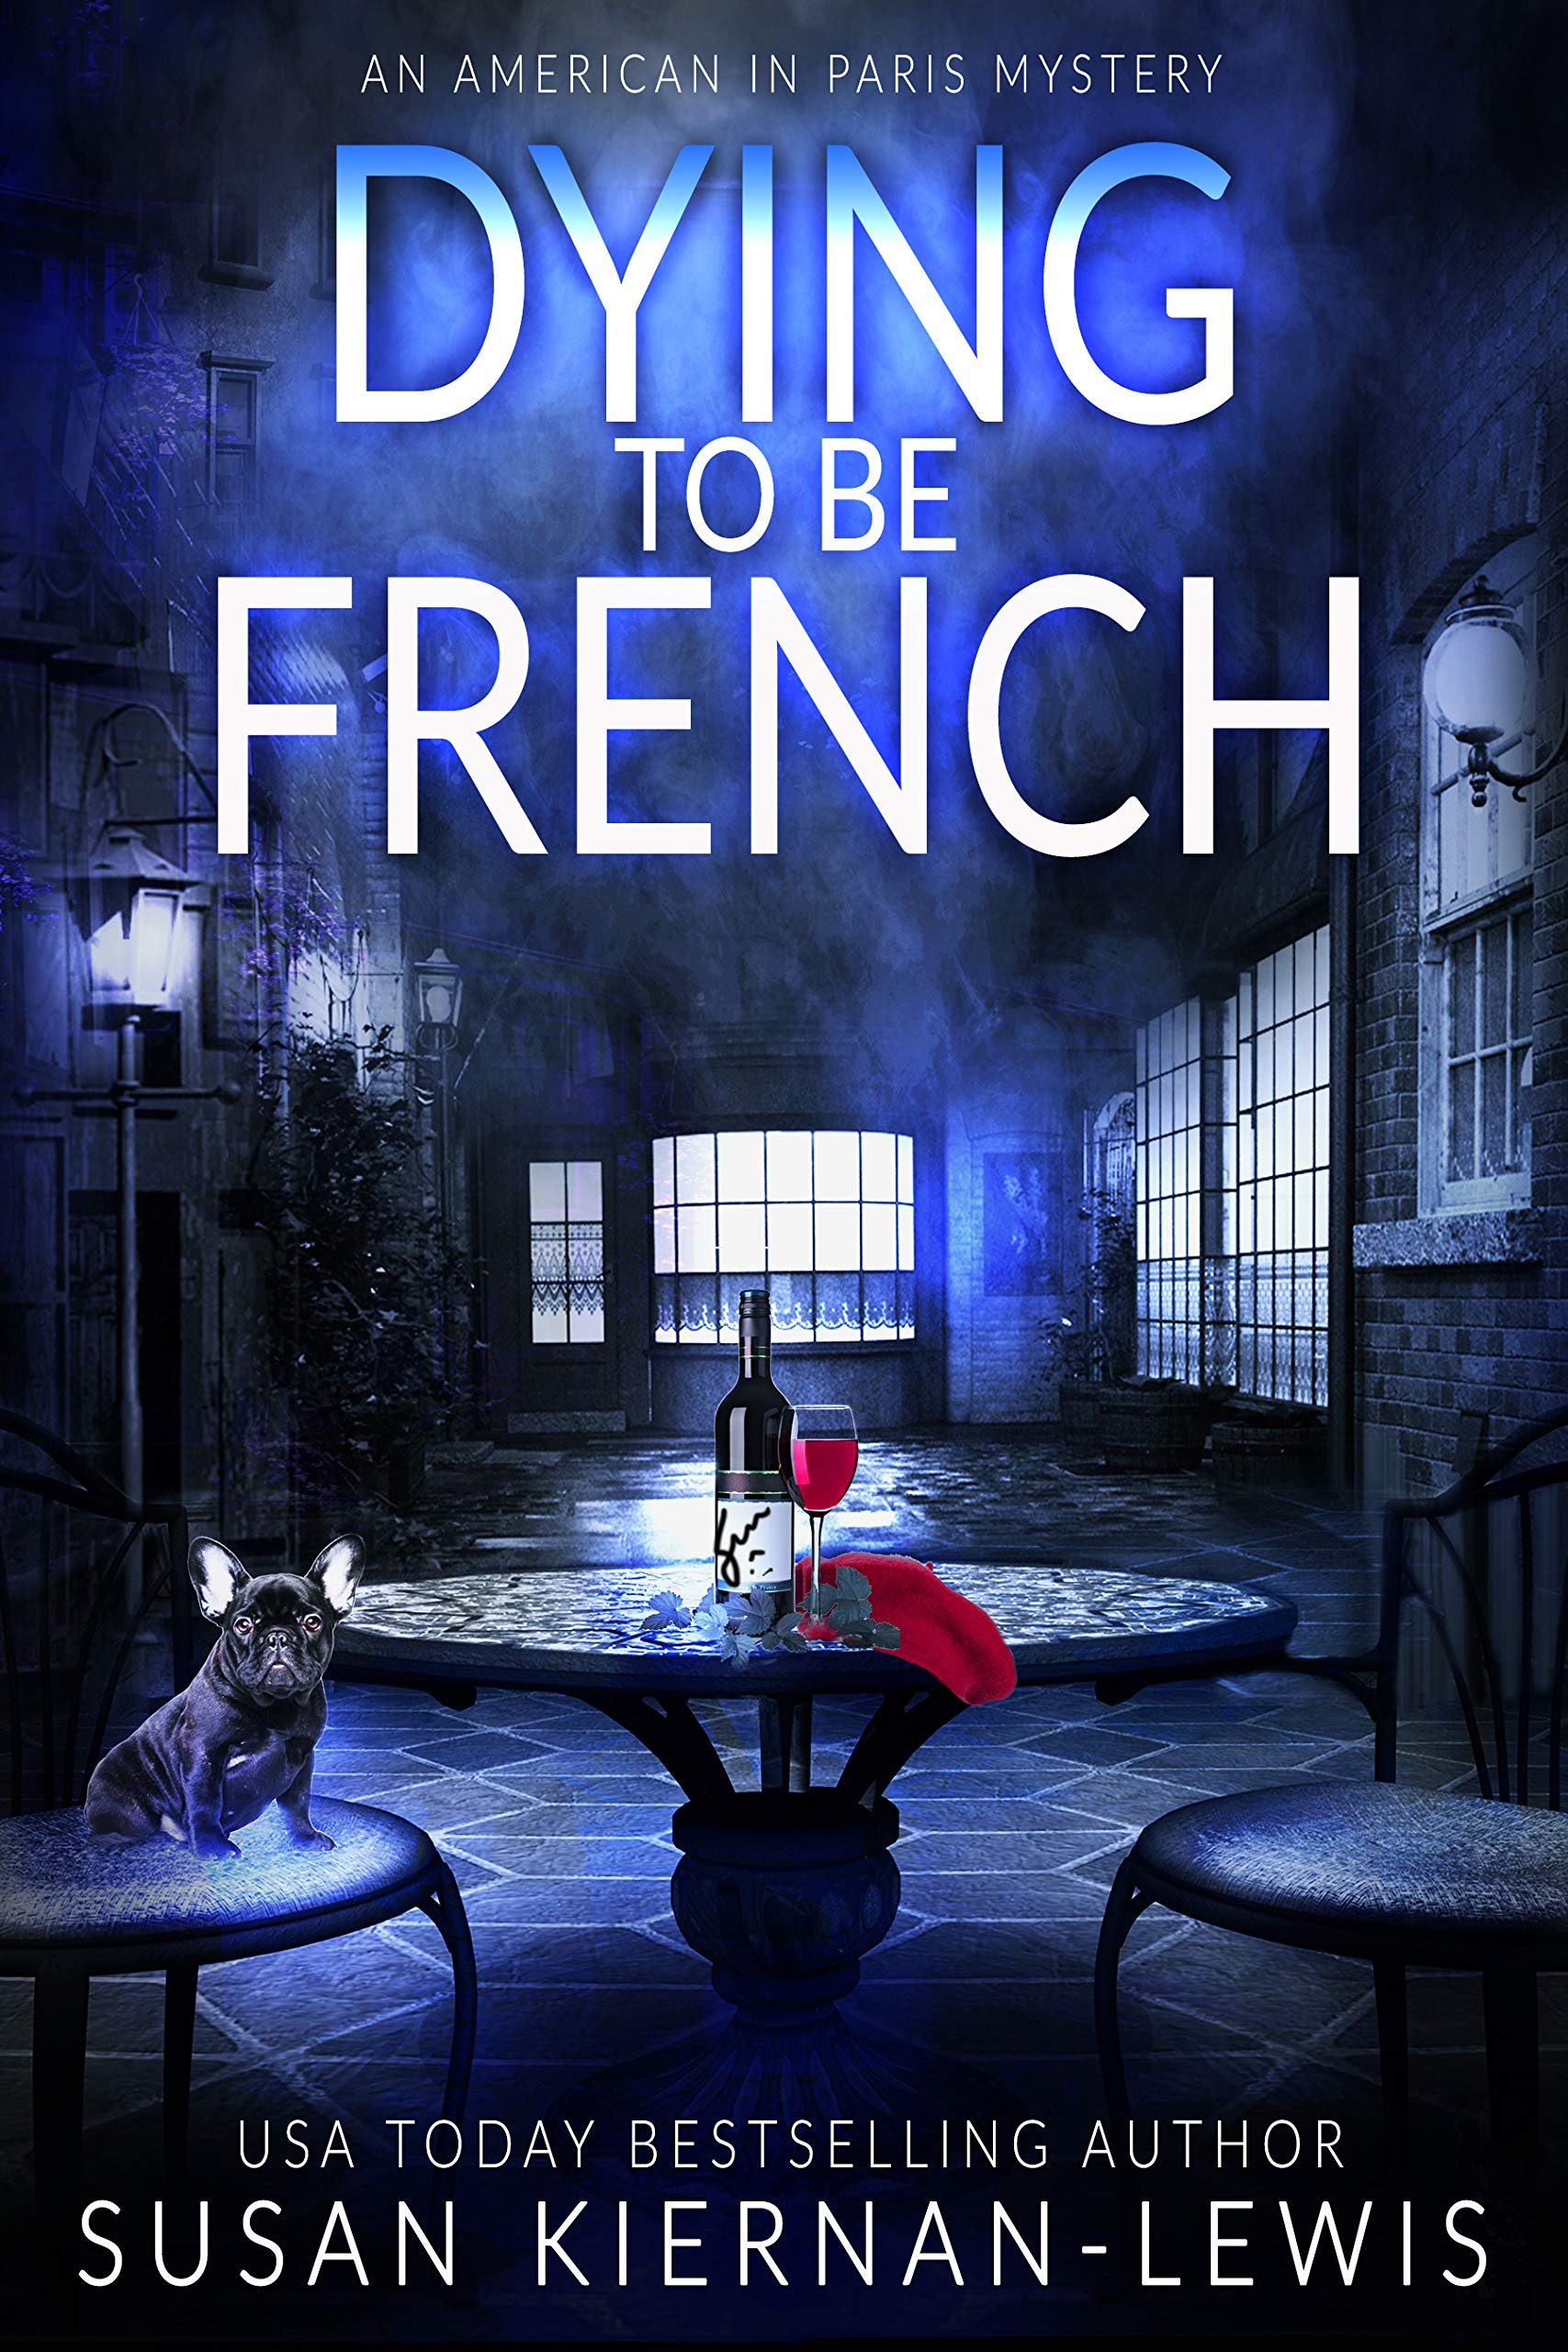 Dying to be French: A fast-paced mystery thriller set in Paris (An American in Paris Book 3)